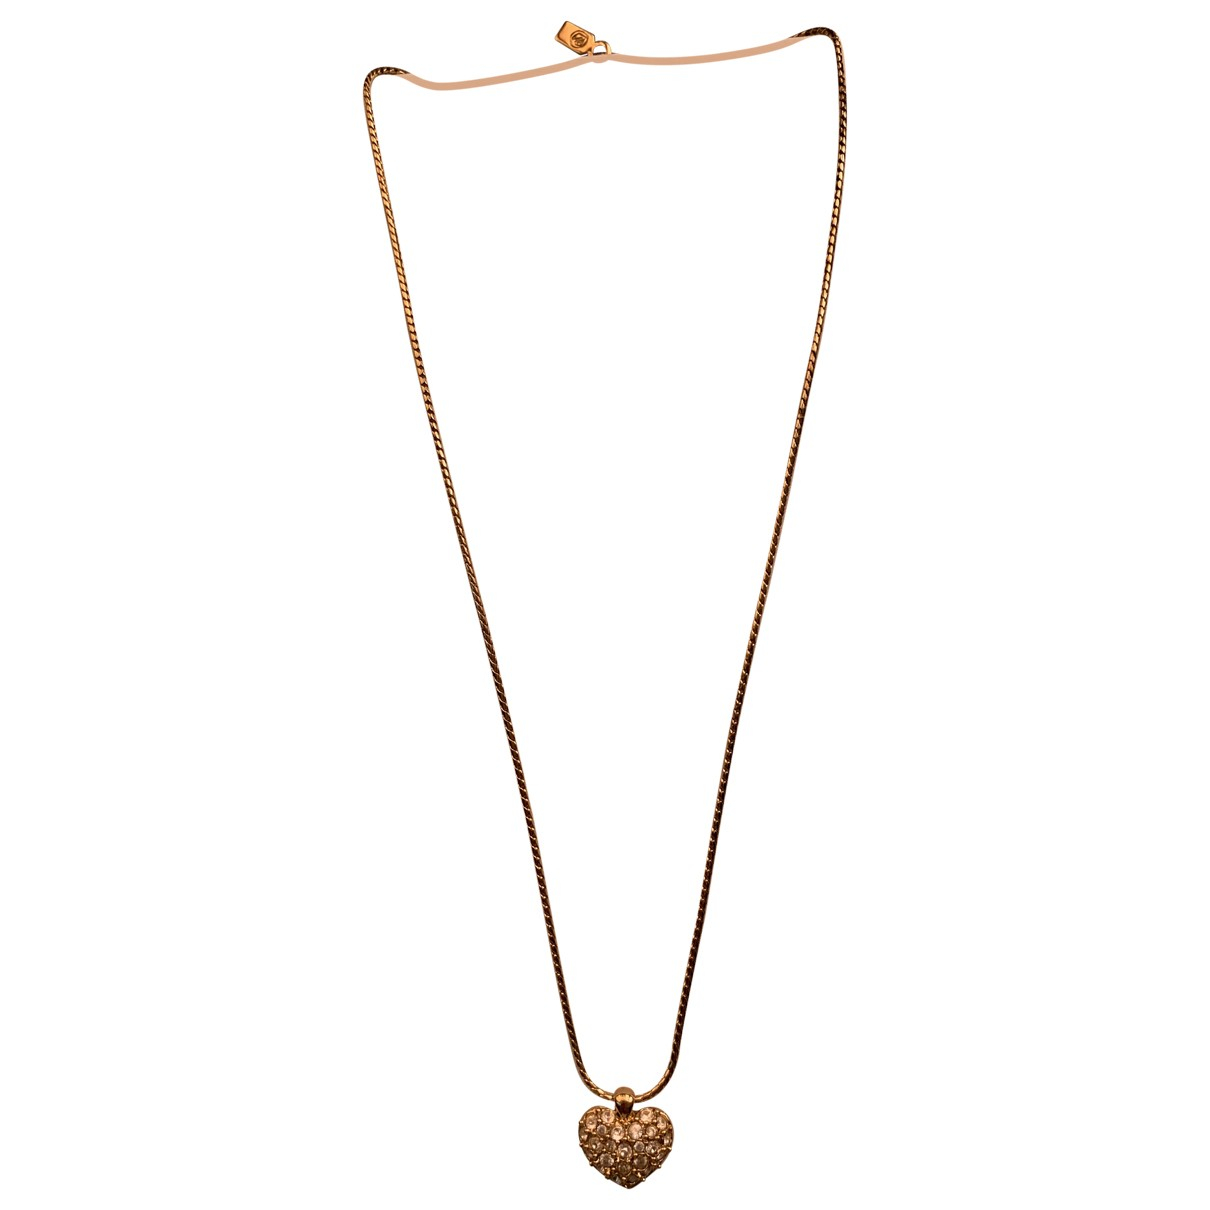 Swarovski N Gold Gold plated necklace for Women N